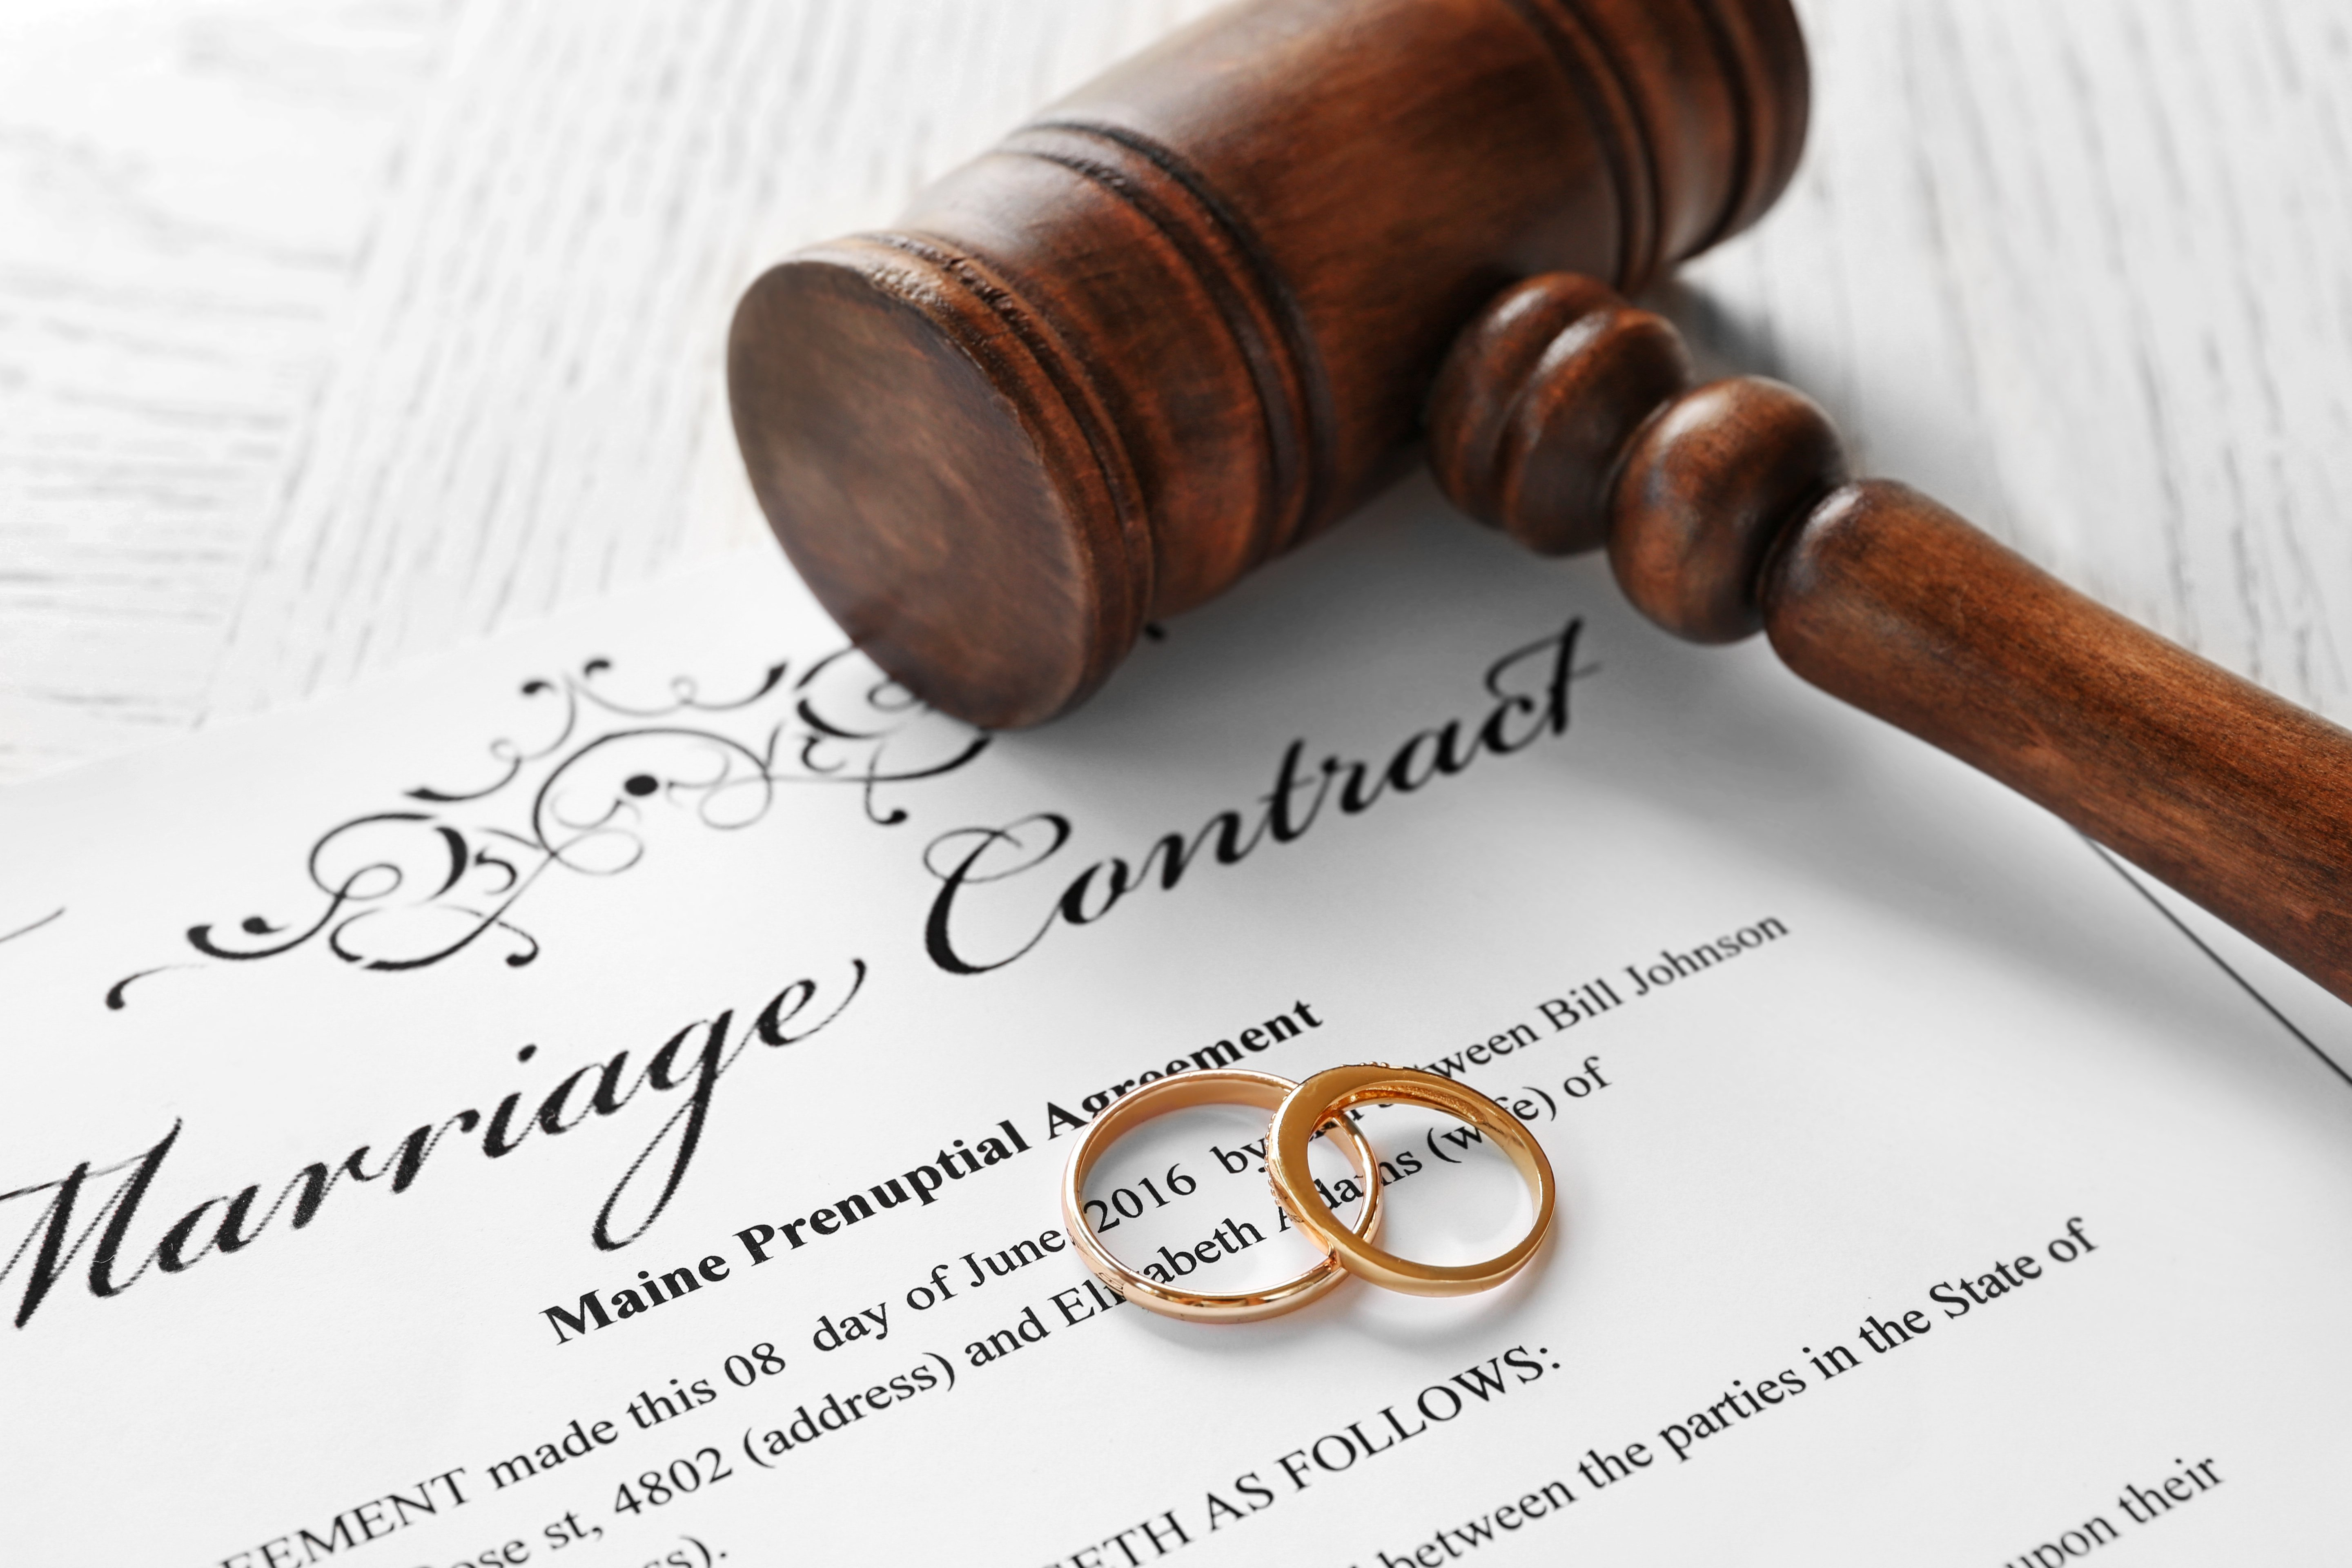 Golden wedding rings with judge gavel on marriage contract. | Photo: Shutterstock